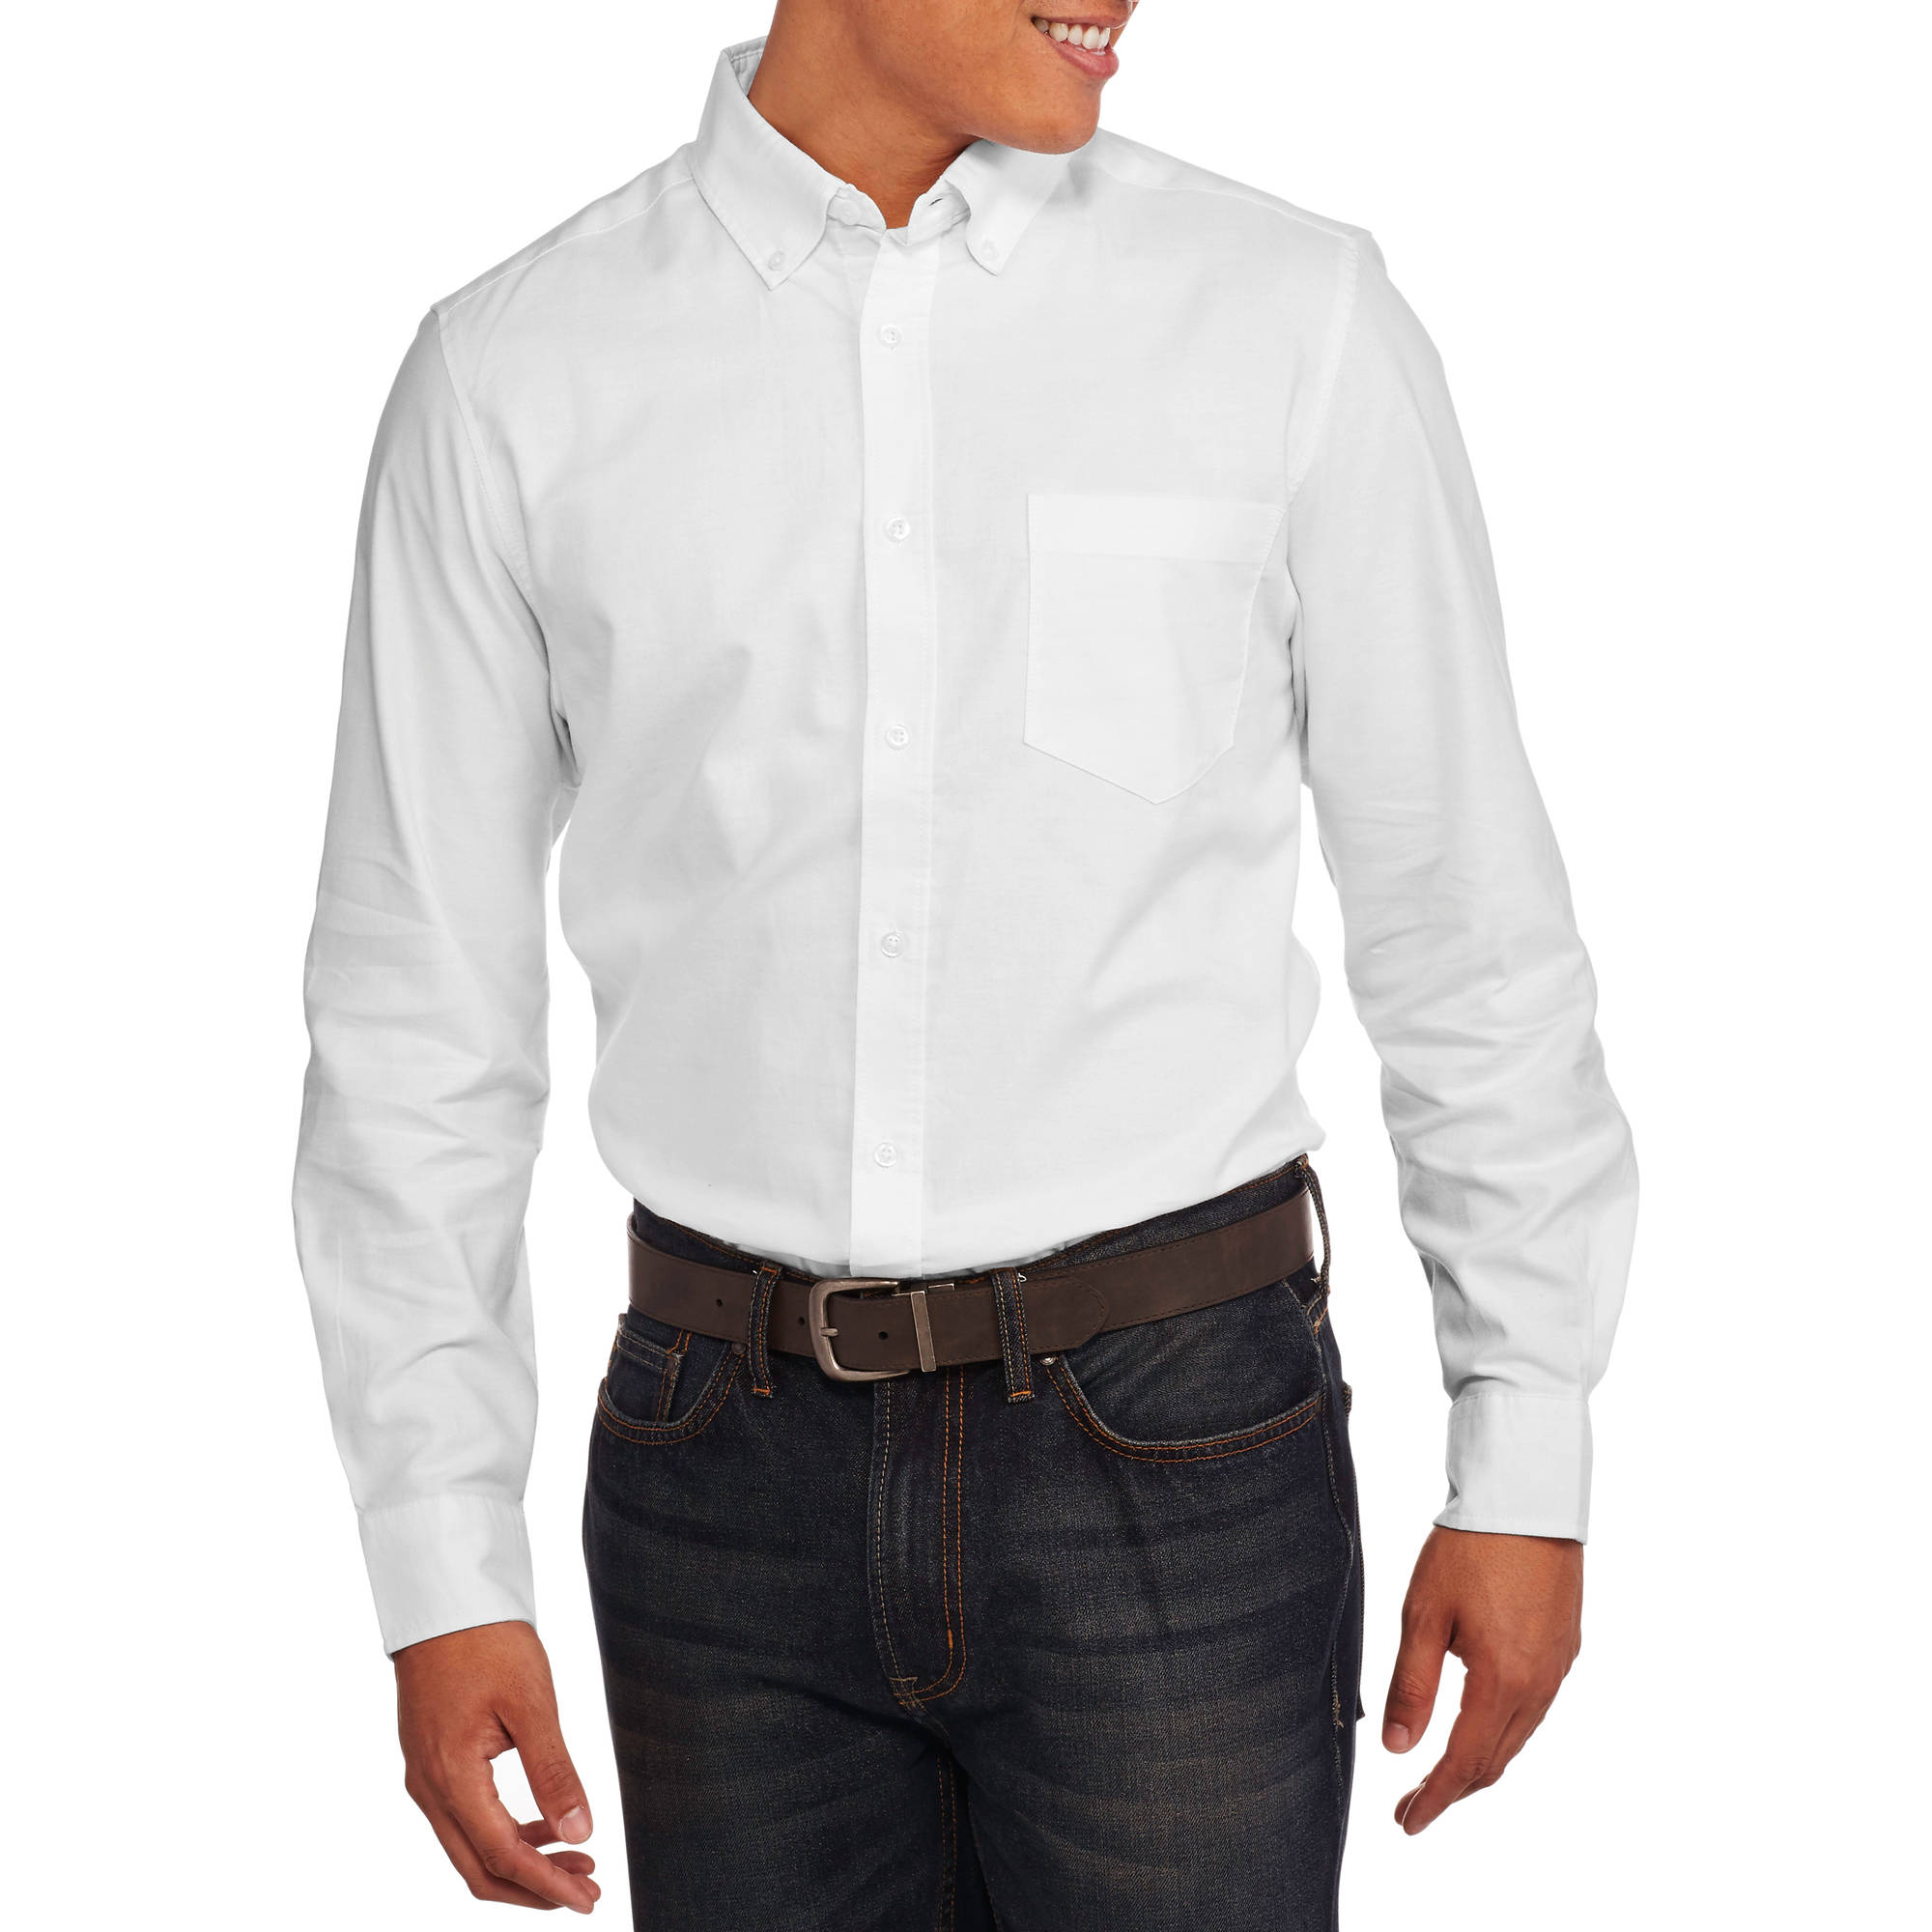 Mens Oxford Shirts Walmart Bcd Tofu House